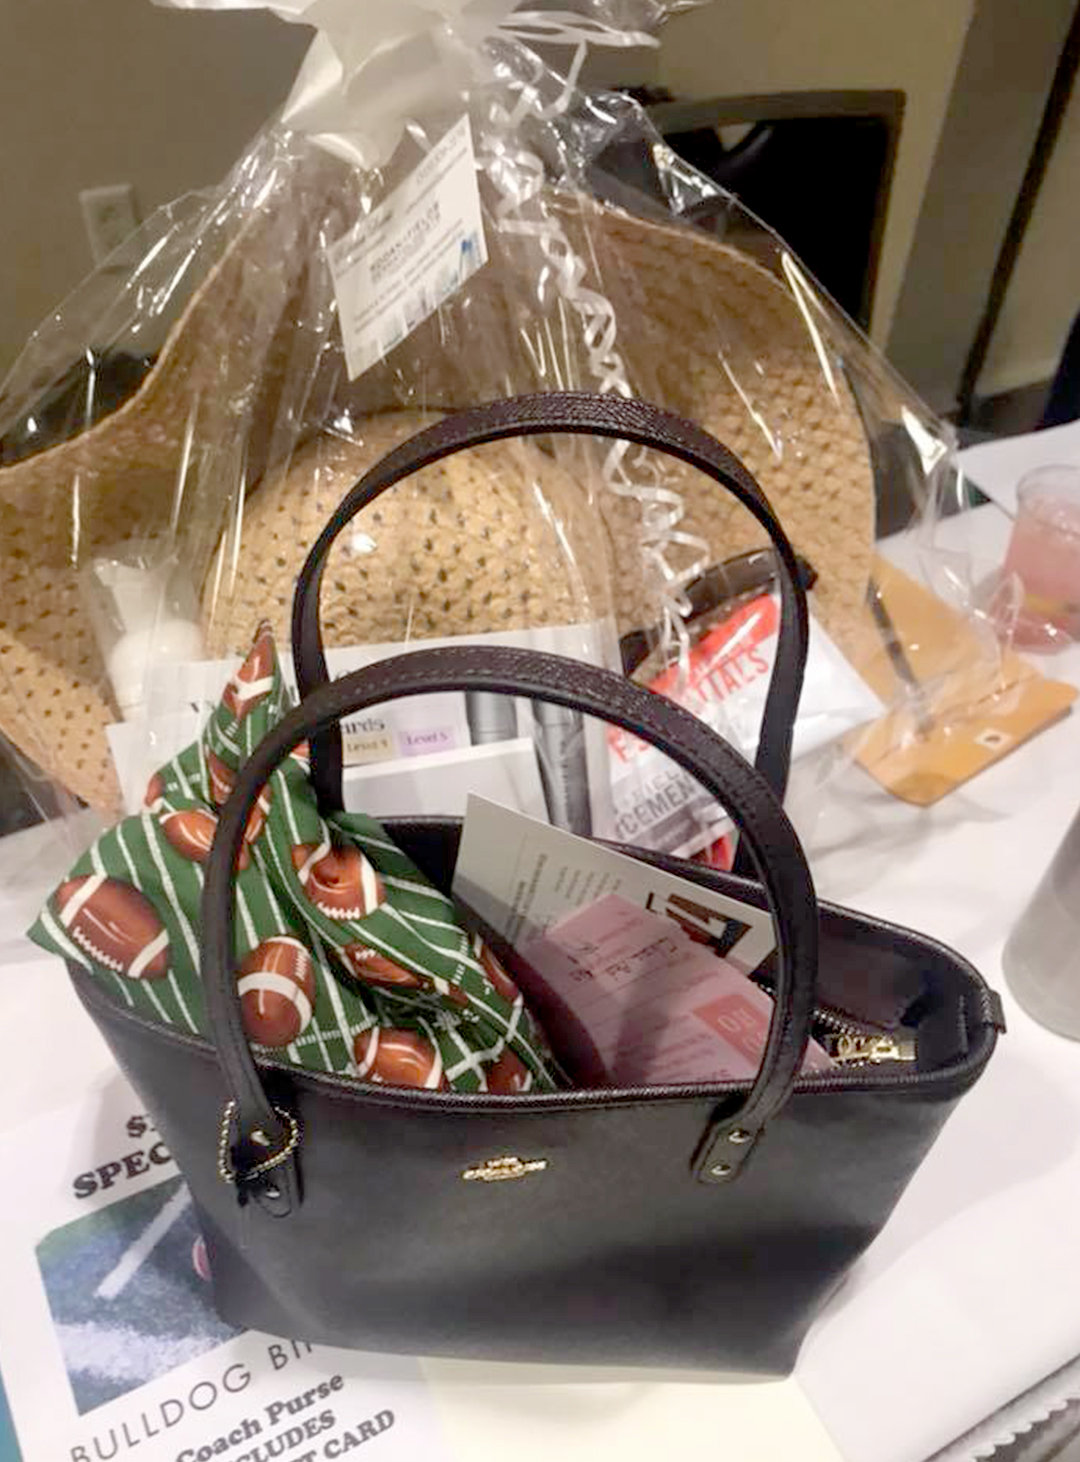 UP FOR GRABS — This designer Coach purse is just one of the handbags being raffled off at Vernon Downs this evening to support Westmoreland Pop Warner football.